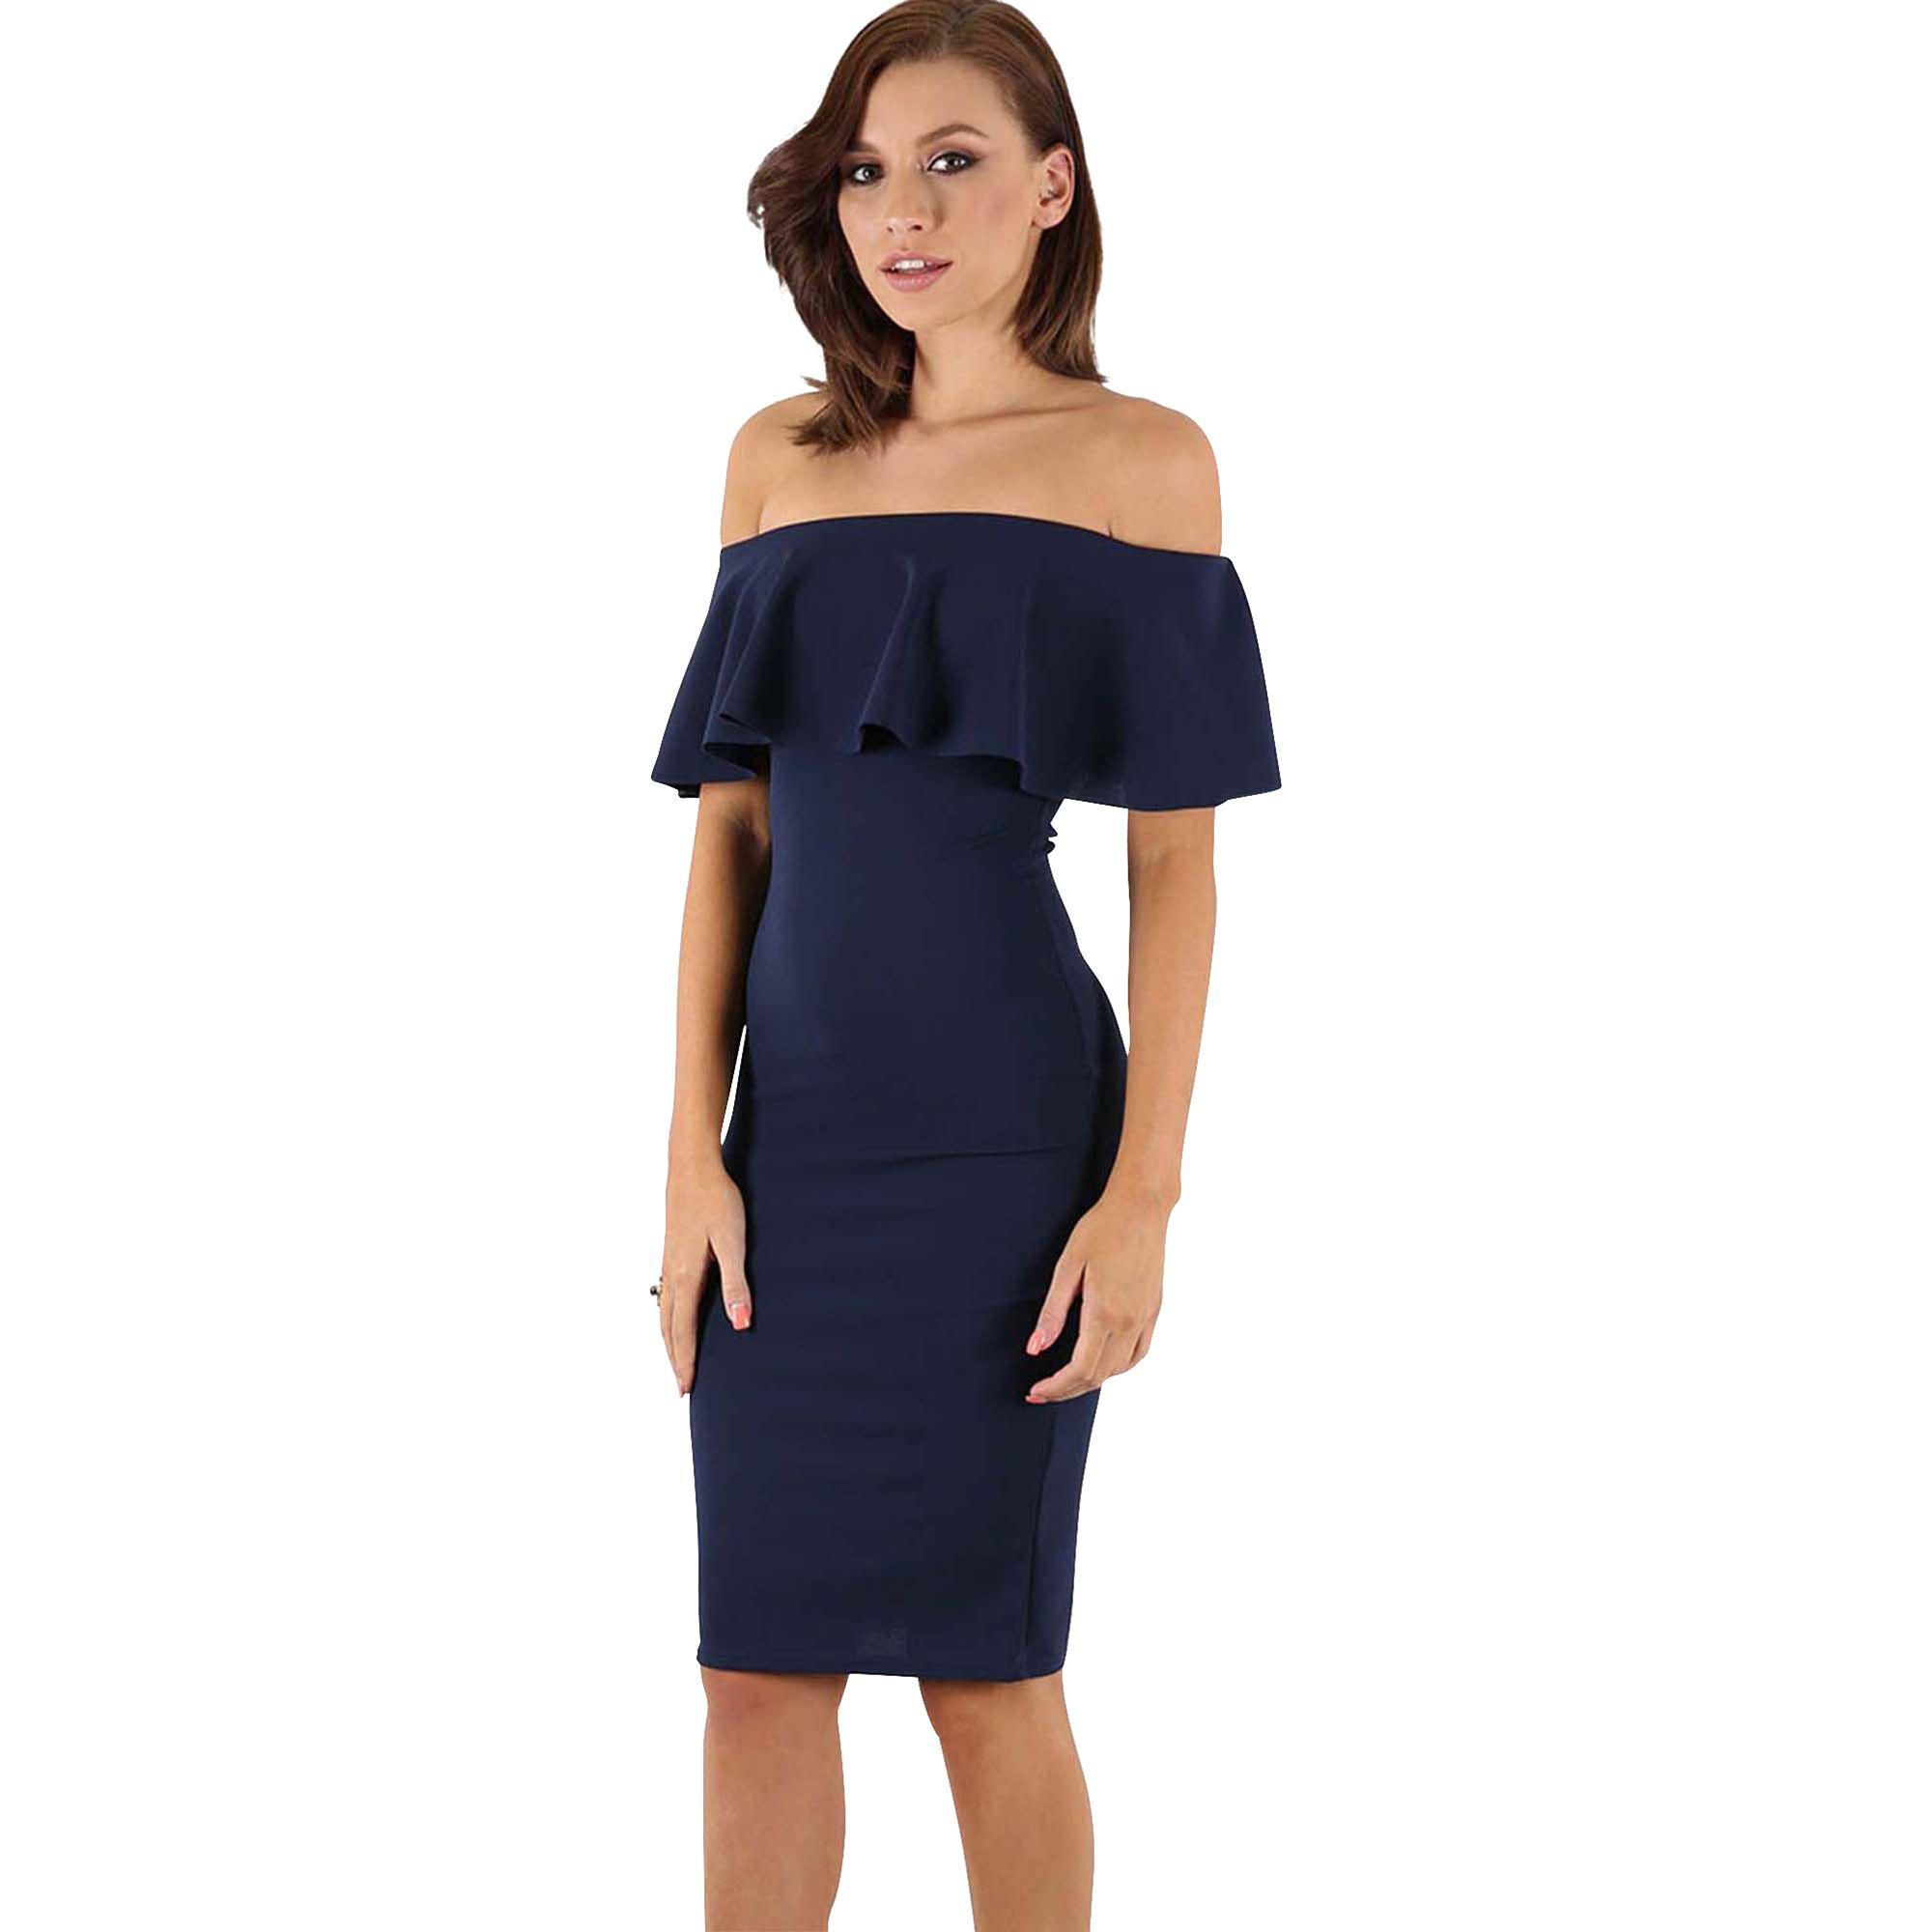 02099030ecba Be Jealous Navy Off Shoulder Peplum Dress in Blue - Lyst